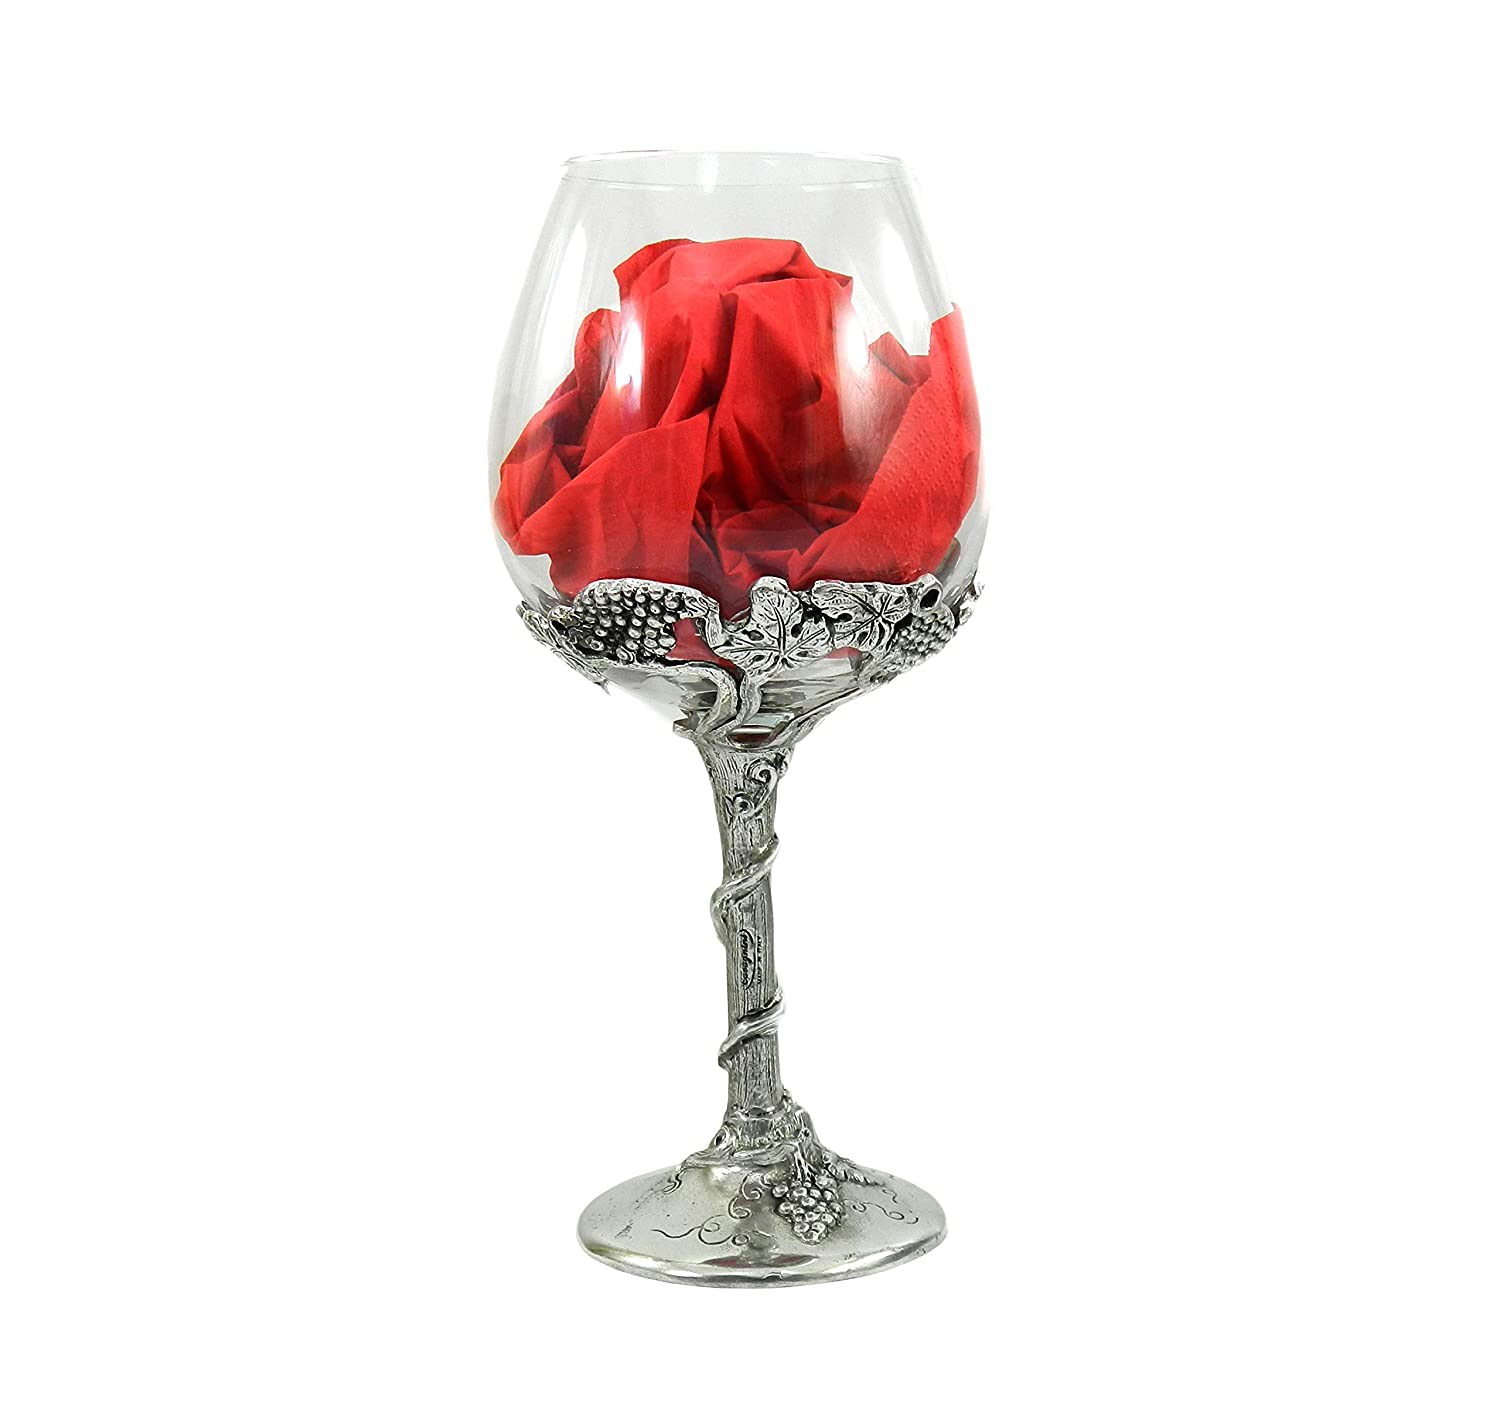 Glass Goblet refined in metal List price and w red glass design Store white